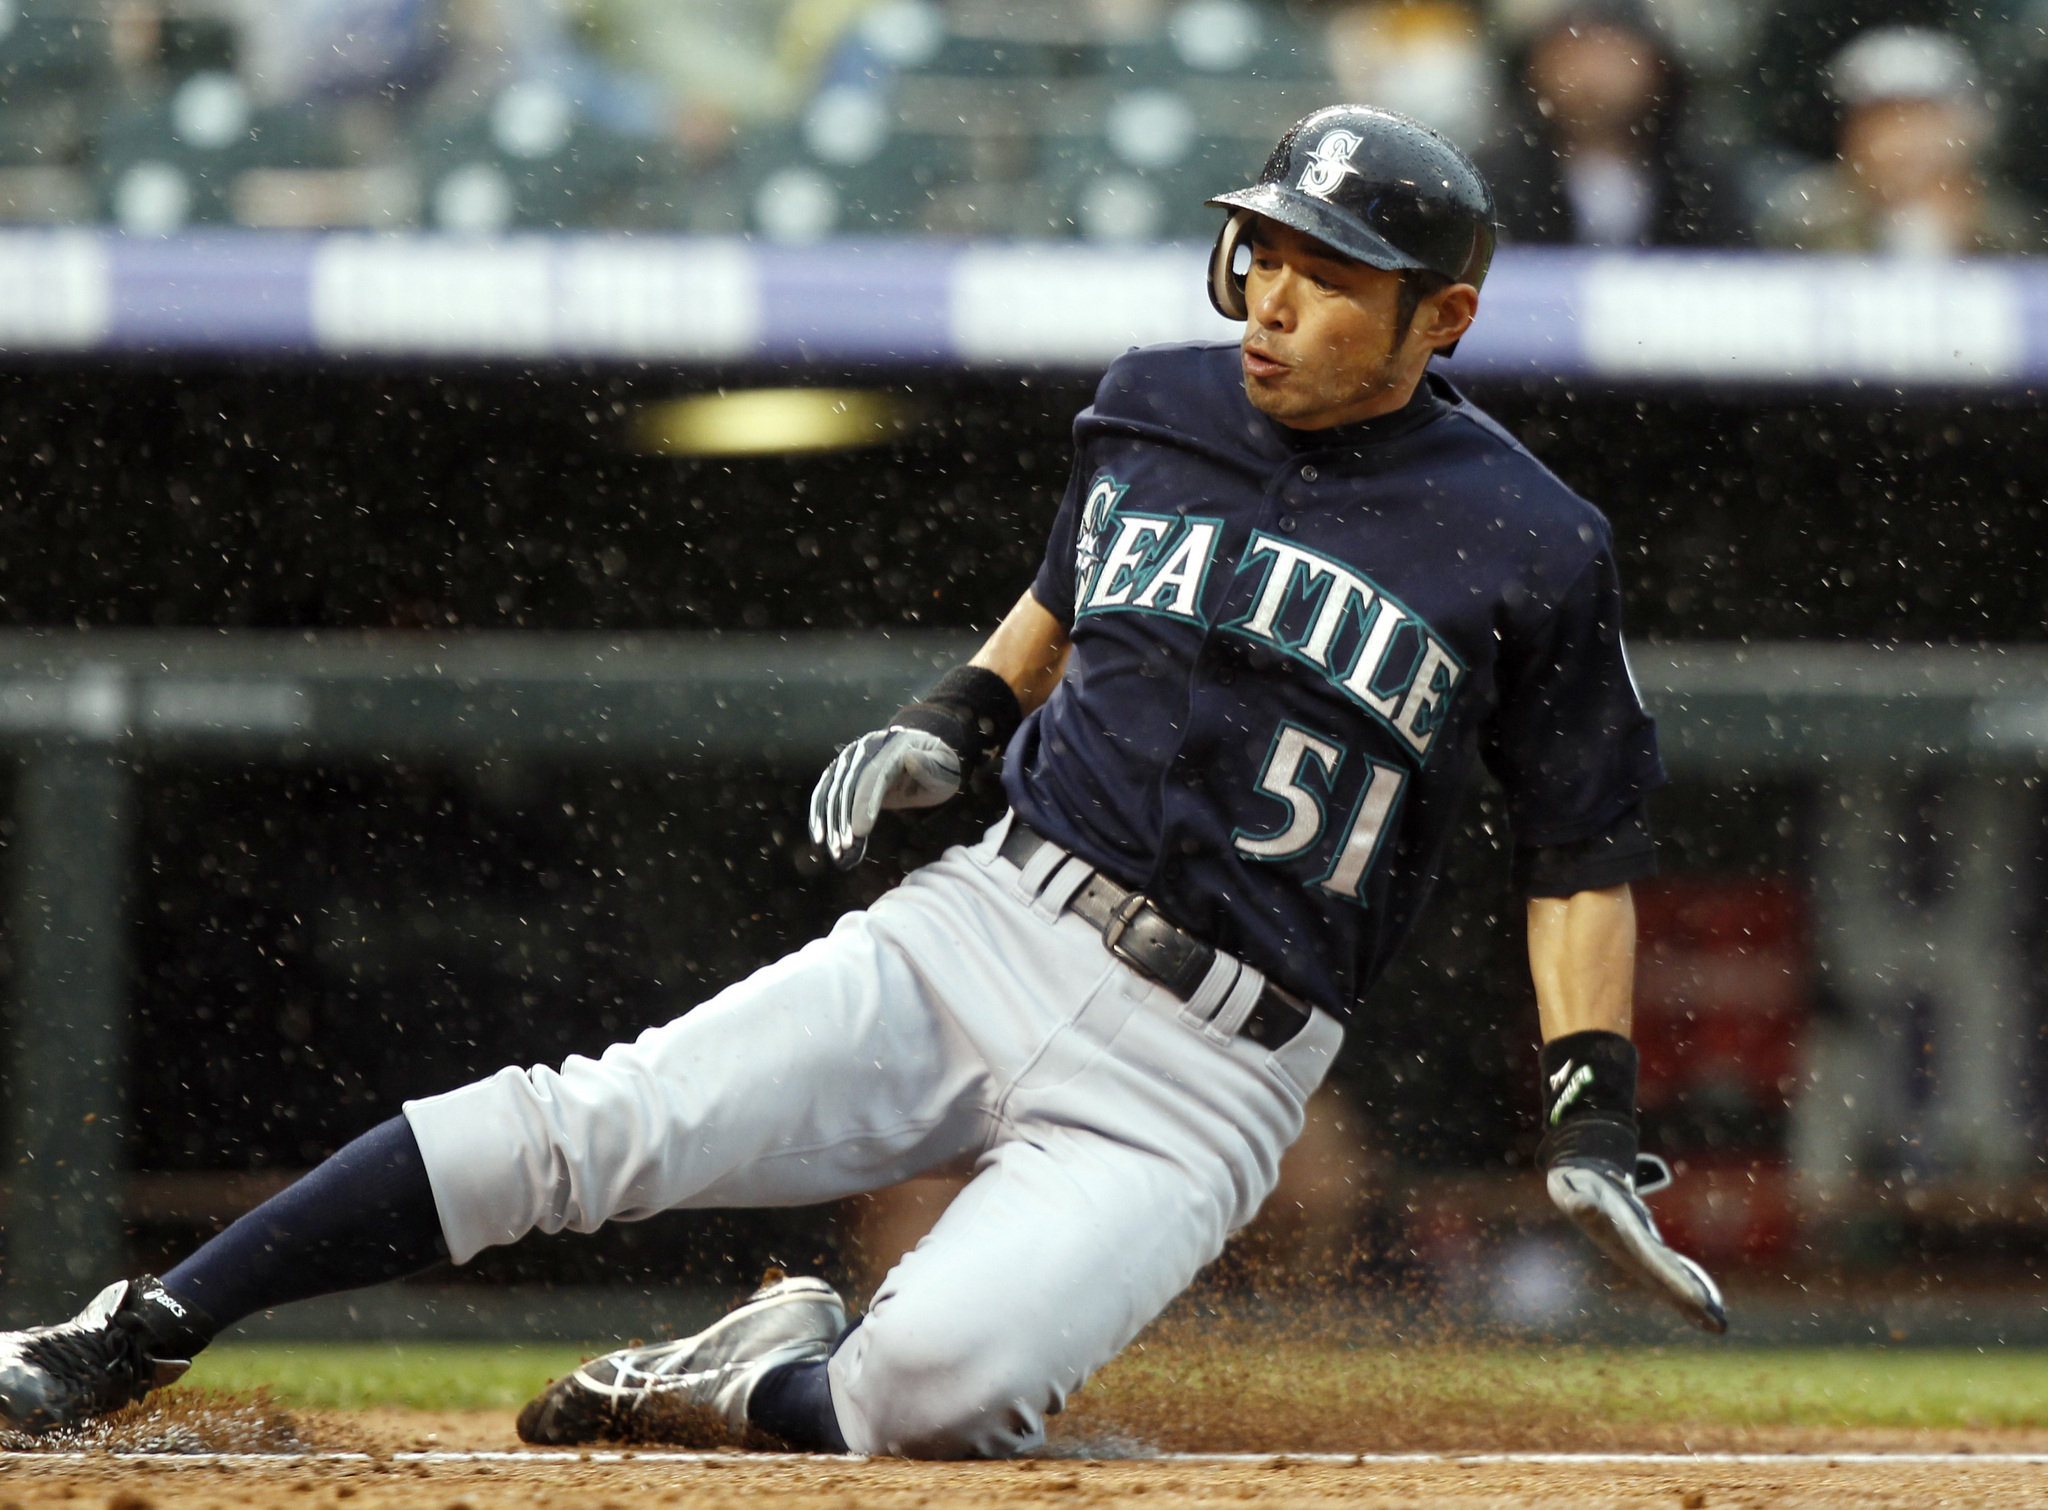 Seattle Mariners Wallpaper For Laptop